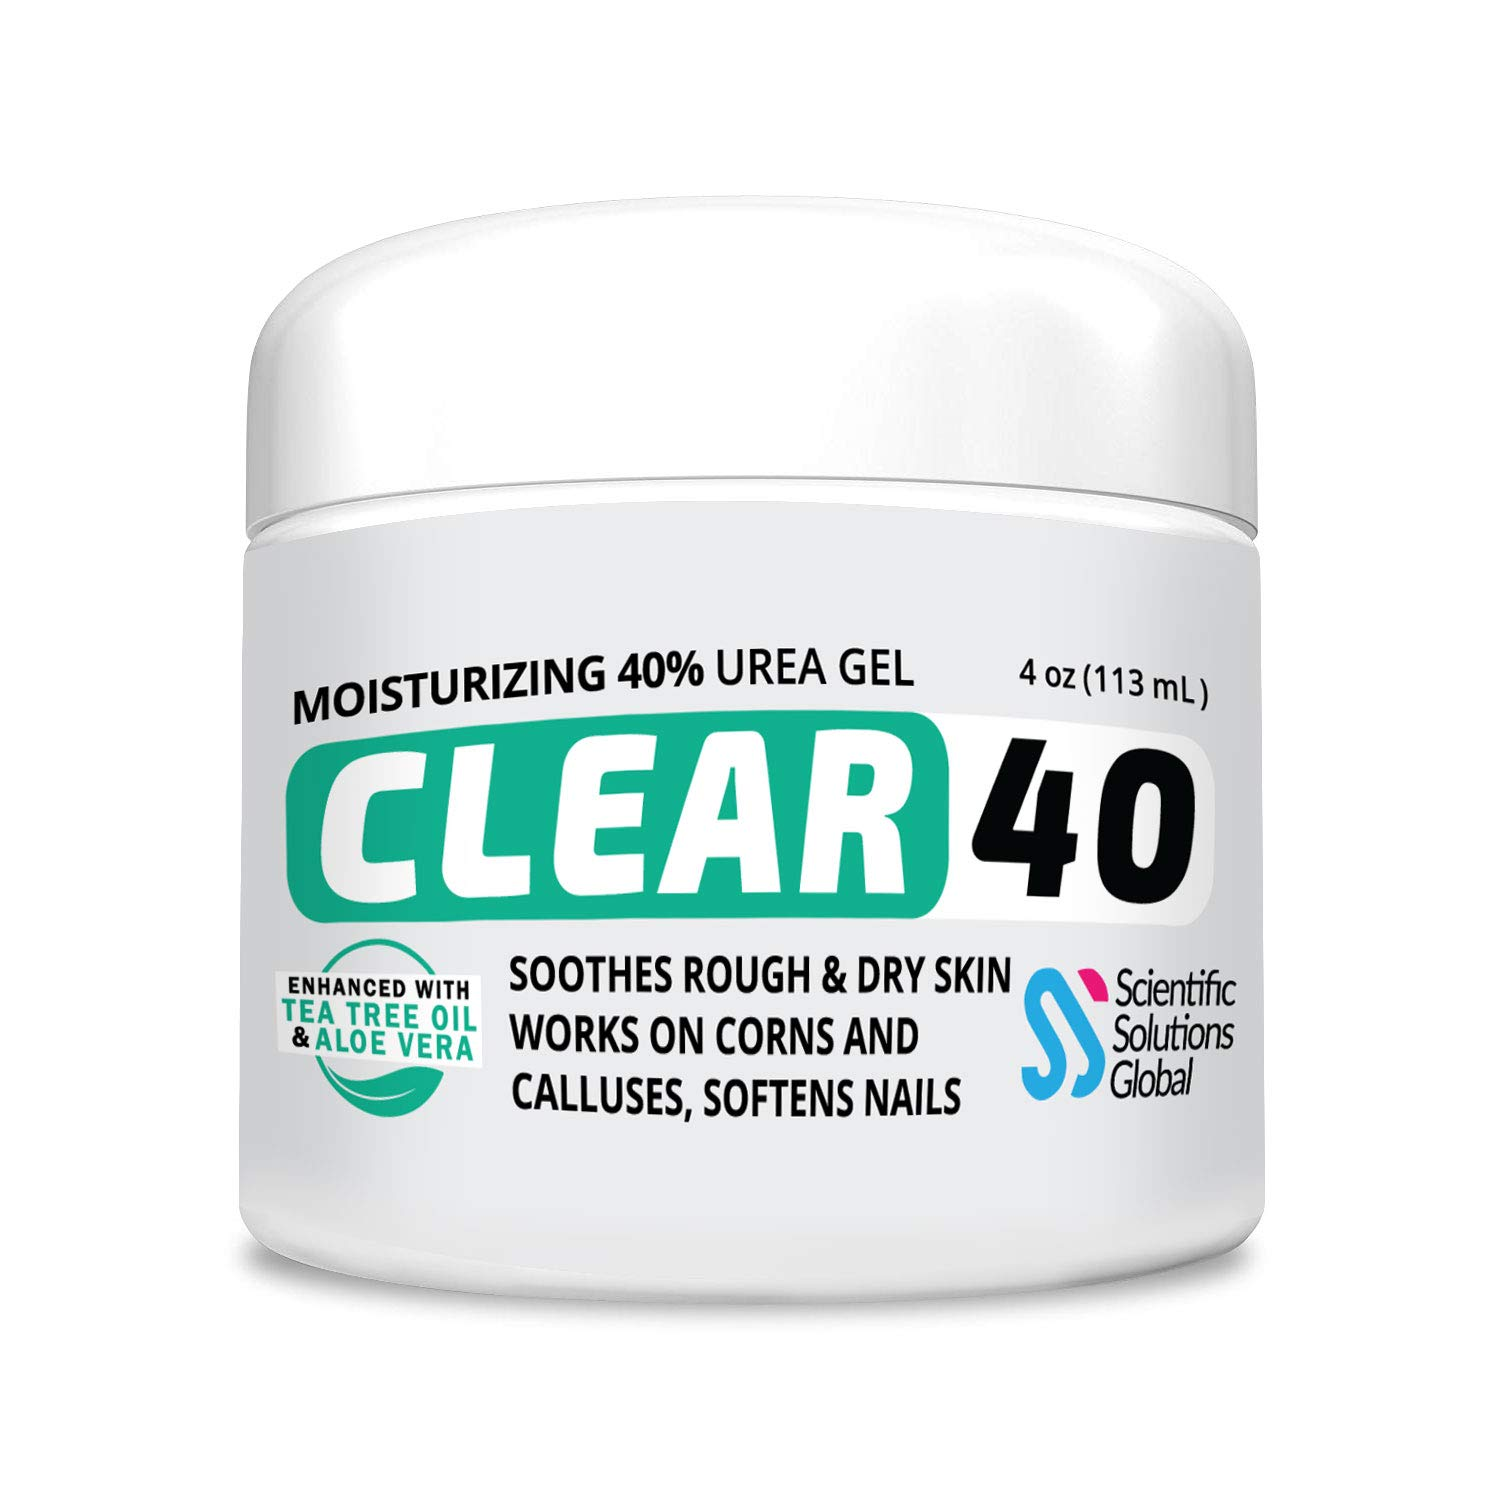 CLEAR 40, 40% Urea Gel, 4 oz w/ Tea Tree & Coconut Oil, Aloe Vera Extract, Callus & Corn Remover Moisturizes & Softens Cracked Heels, Feet, Elbows, Hands, Nails, Re-hydrates skin better than creams